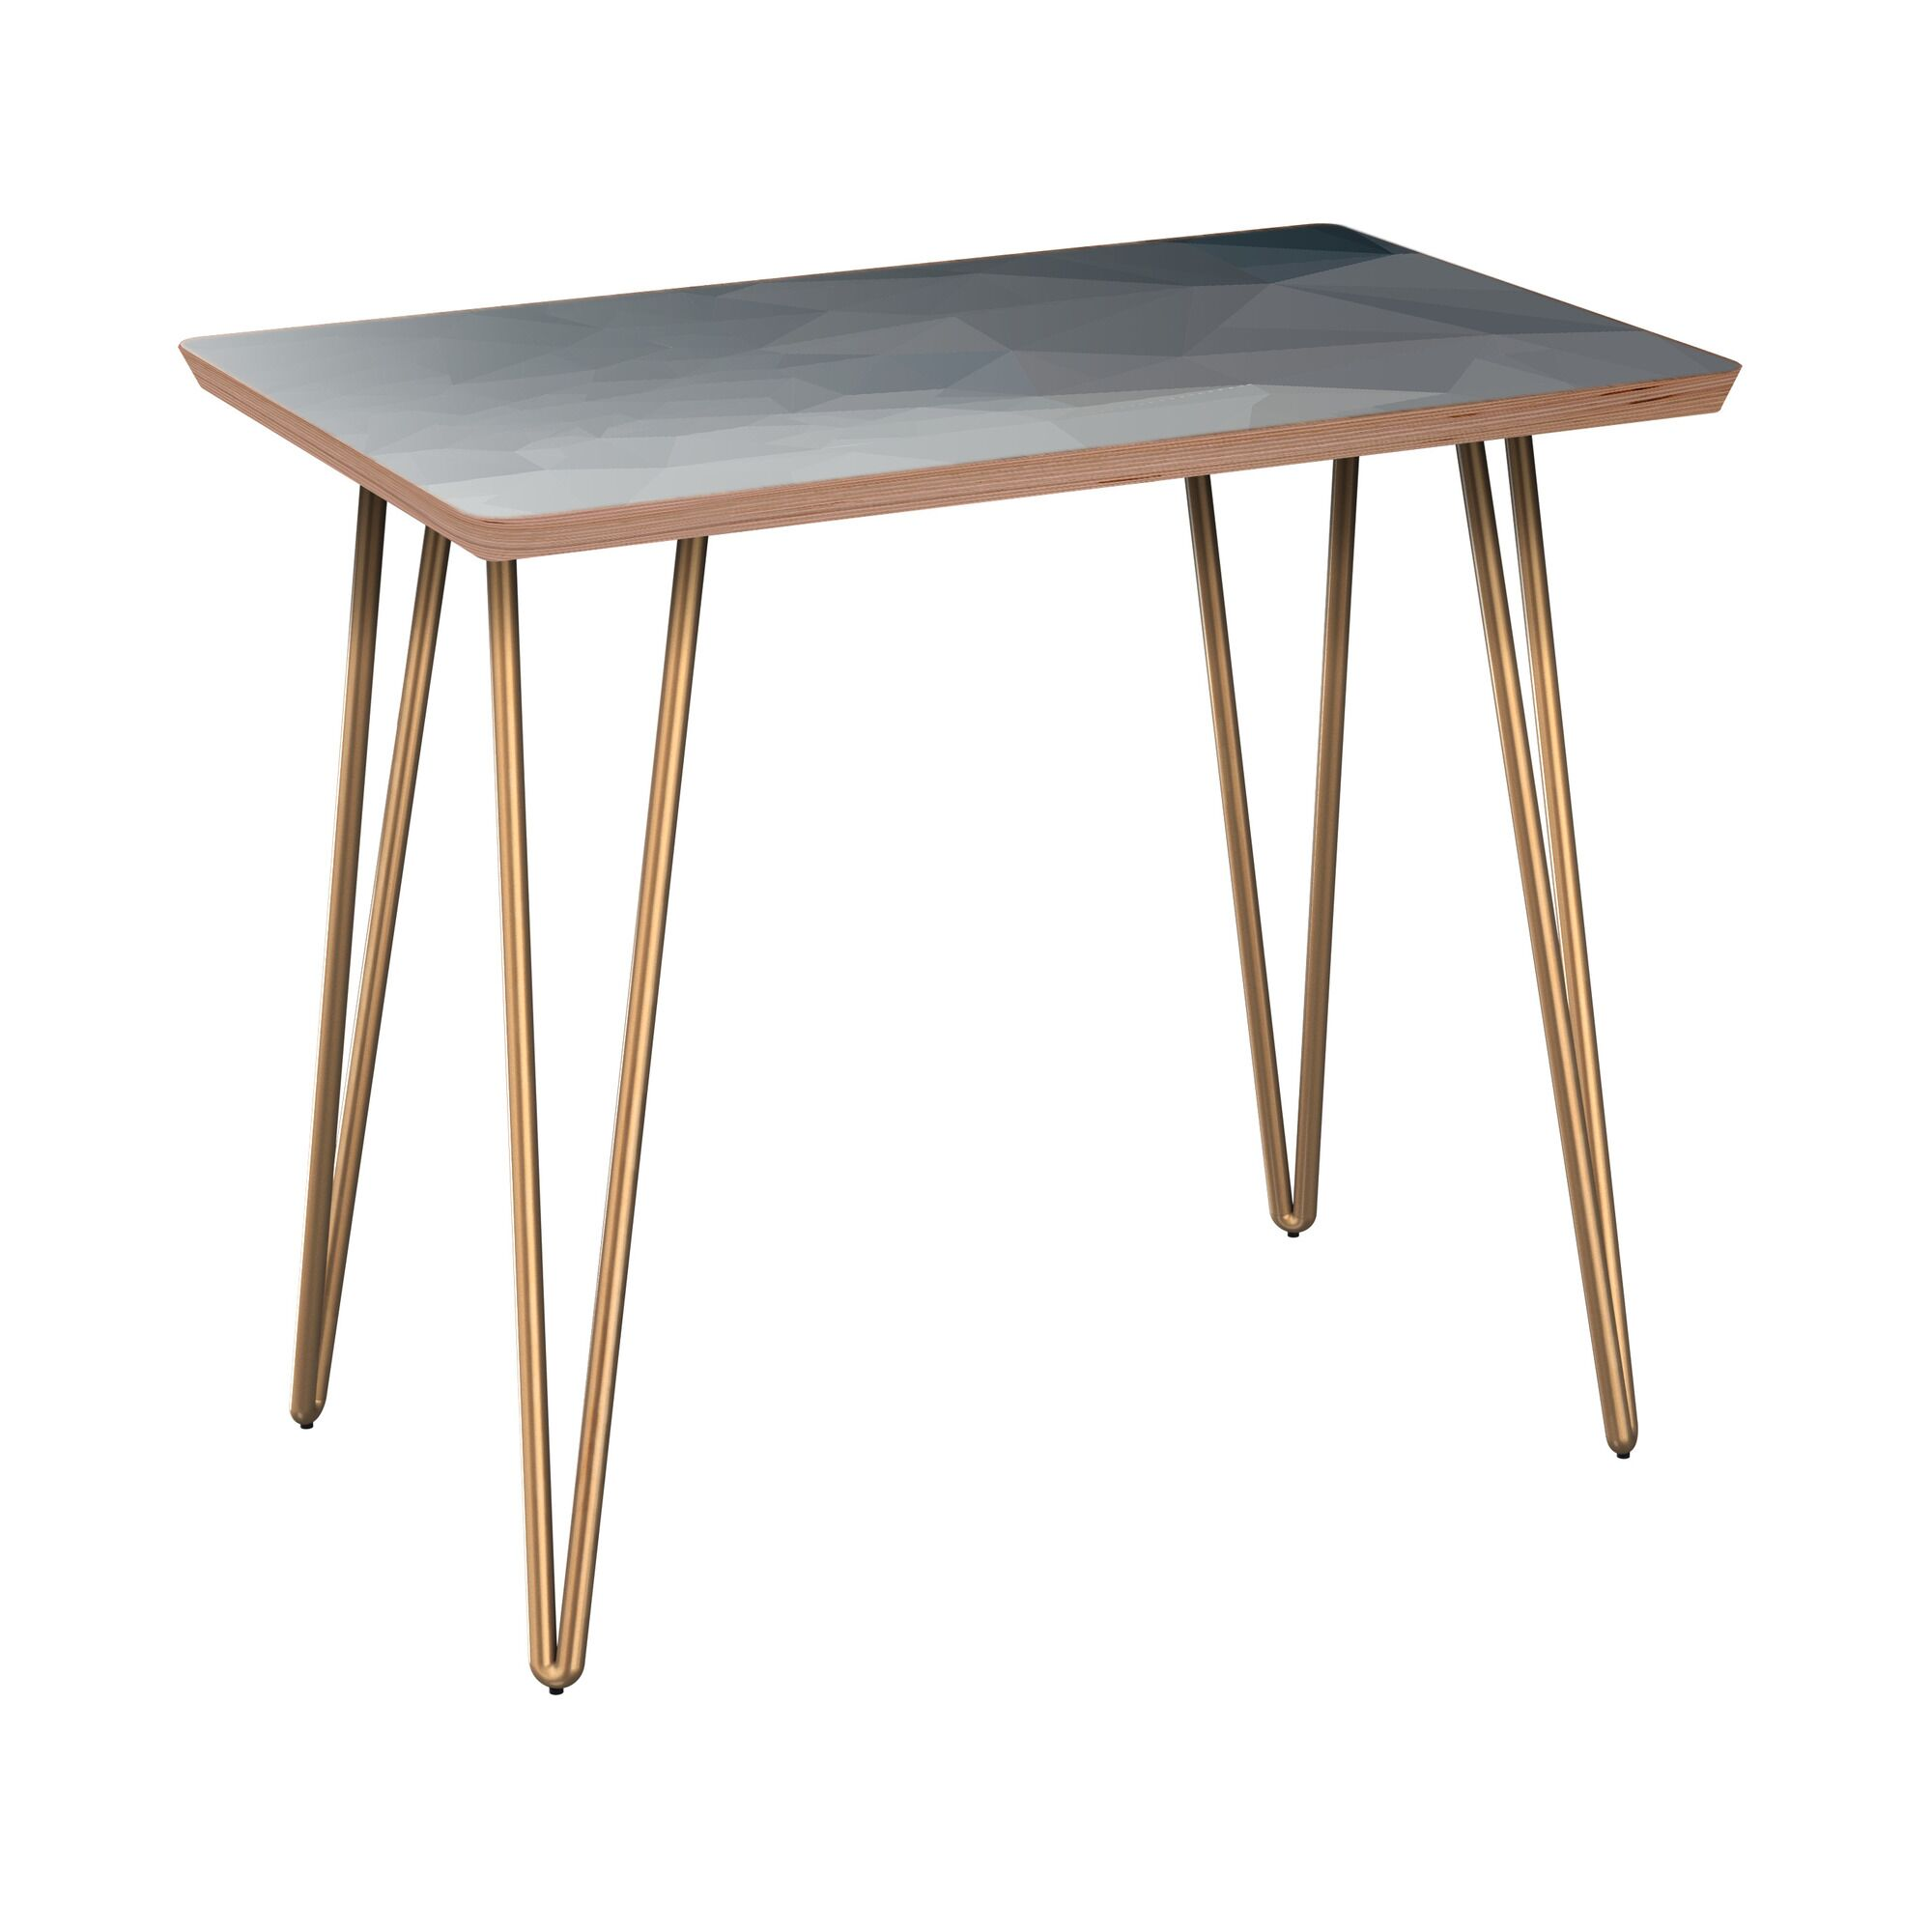 Lake Butler End Table Table Base Color: Brass, Table Top Boarder Color: Walnut, Table Top Color: Blue